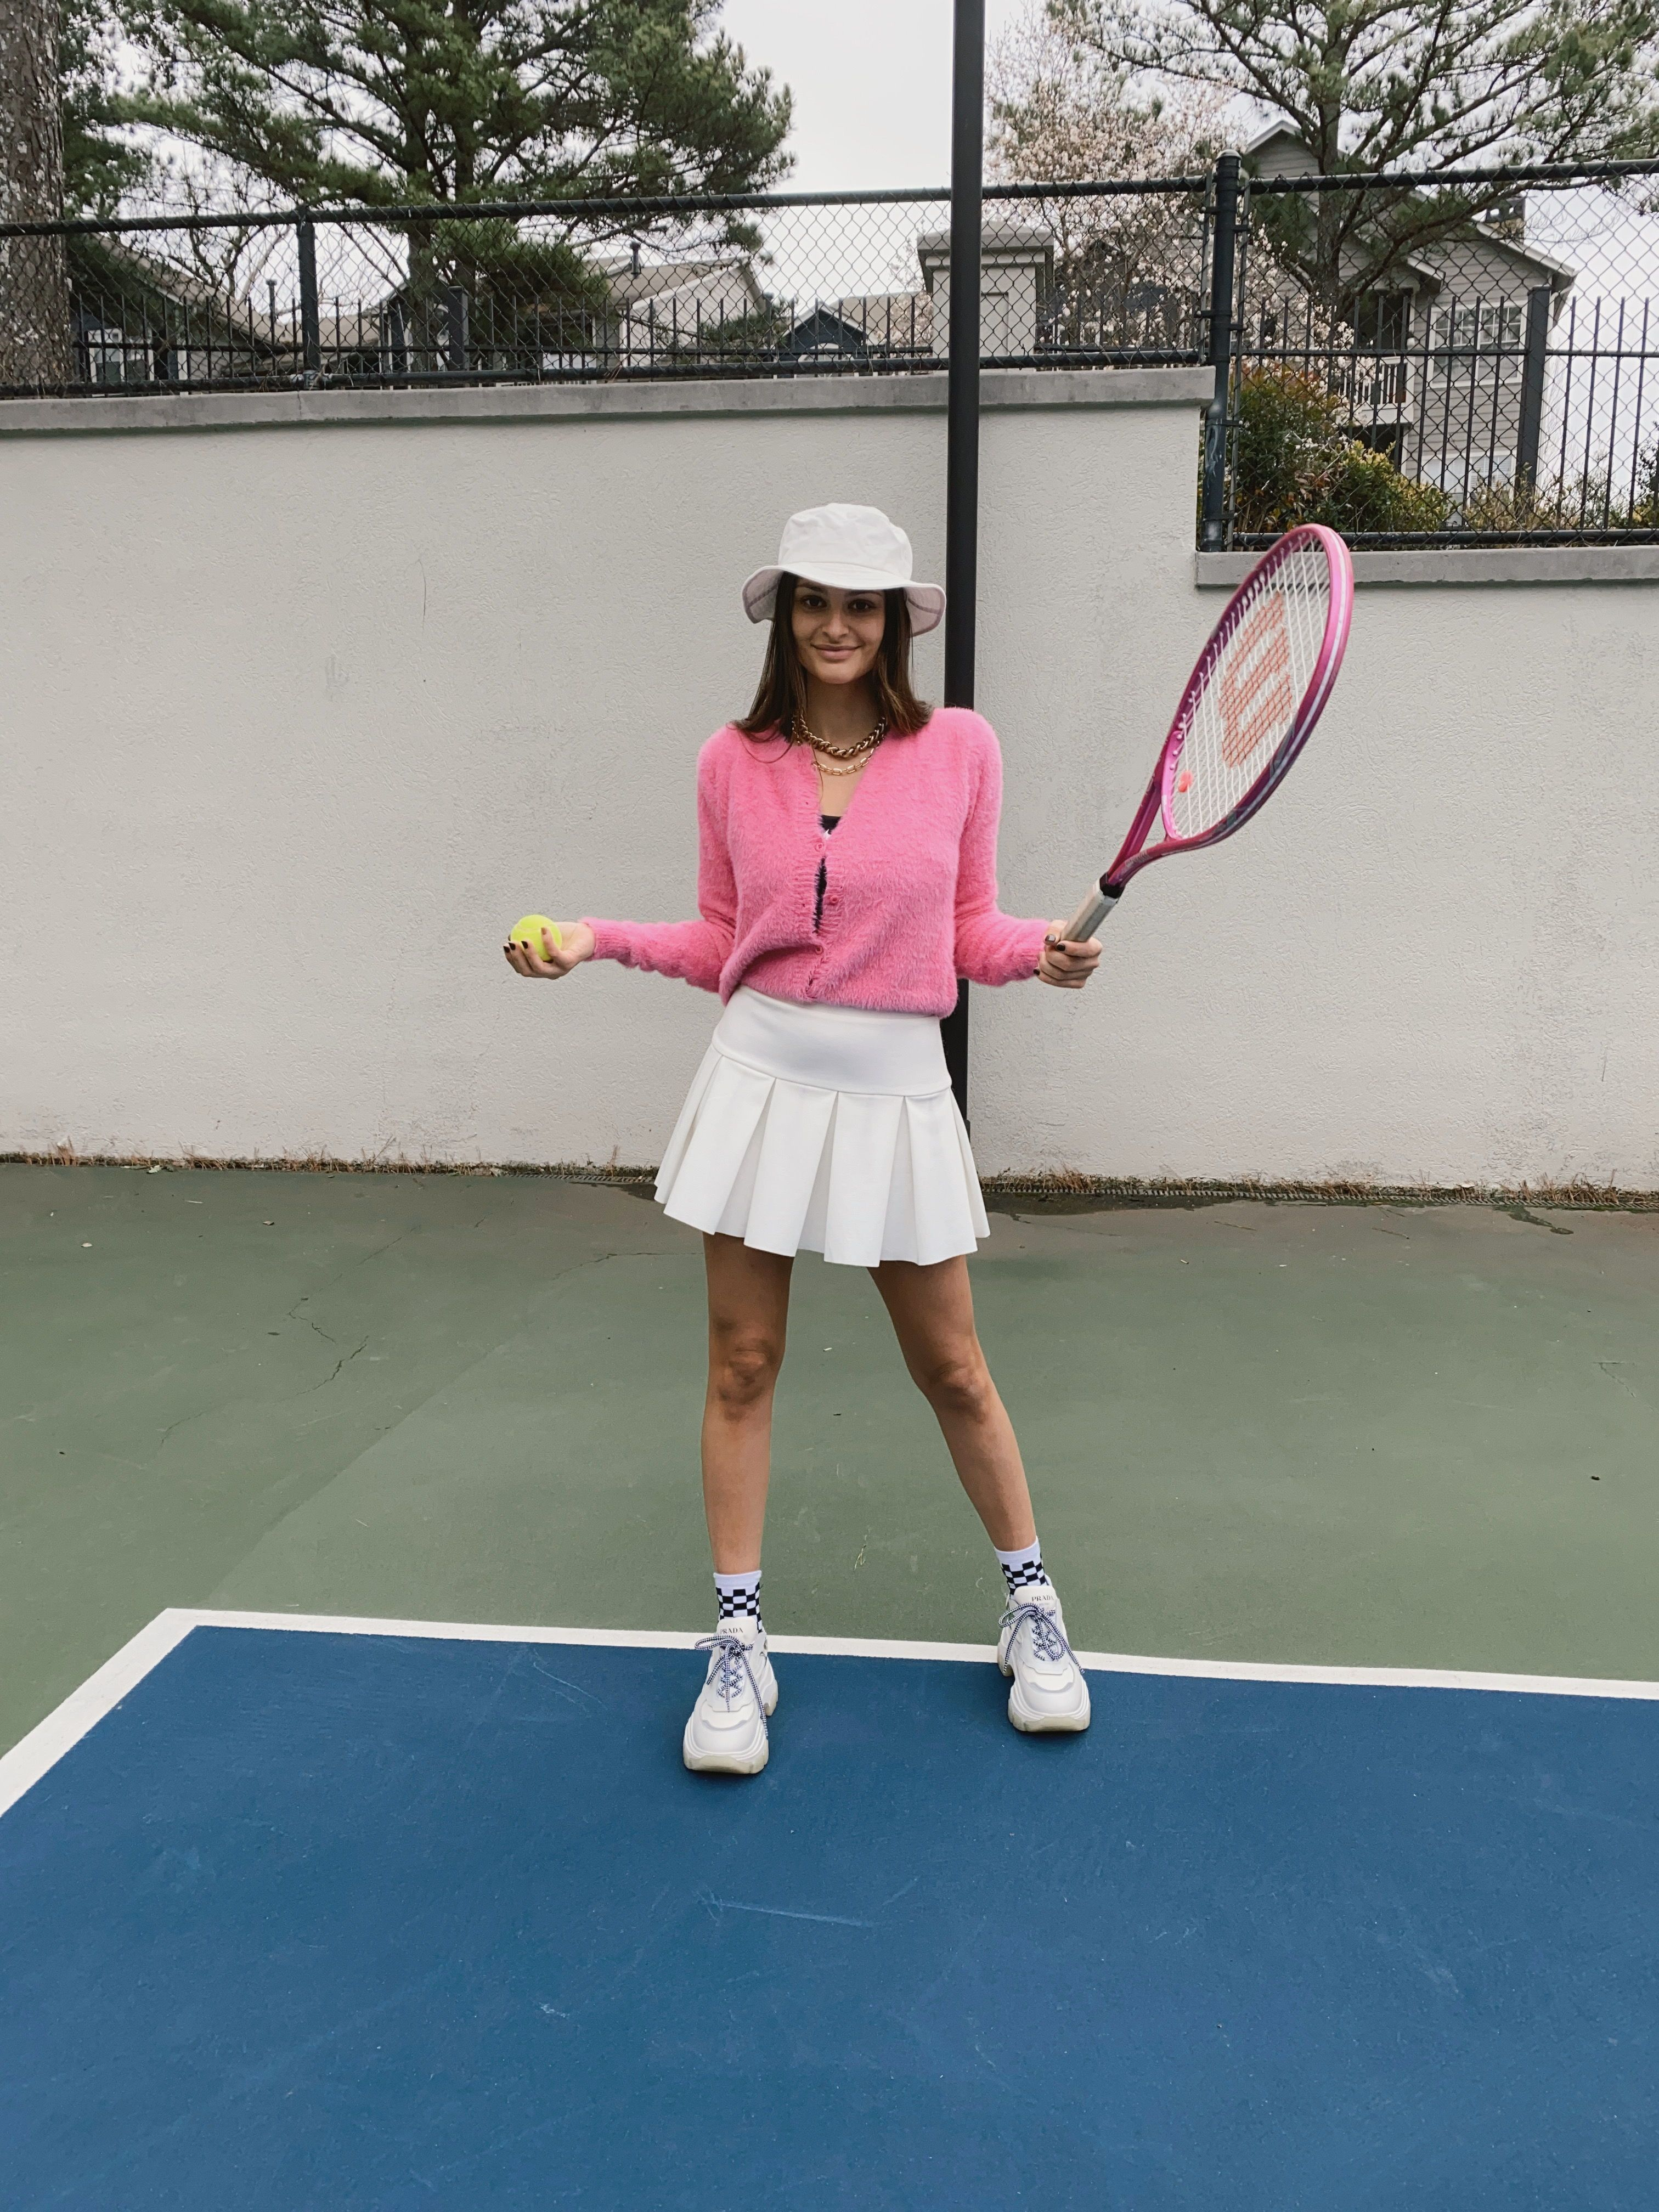 Summer And Spring Outfit Inspiration In 2020 Tennis Court Photoshoot Outfit Inspiration Spring Tennis Skirt Outfit